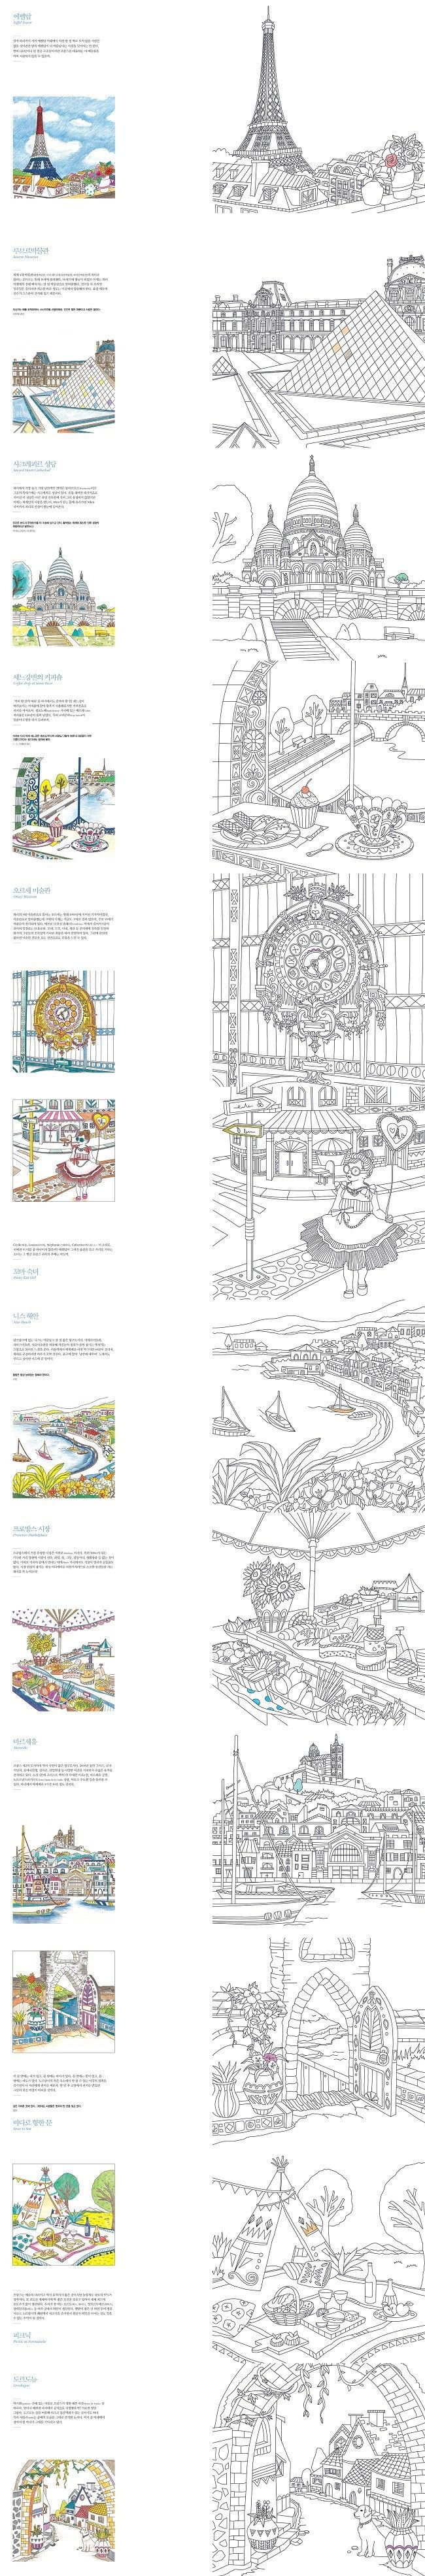 South korea coloring book - Grace London Made In Korea Coloring Book For Children Adult Graffiti Painting